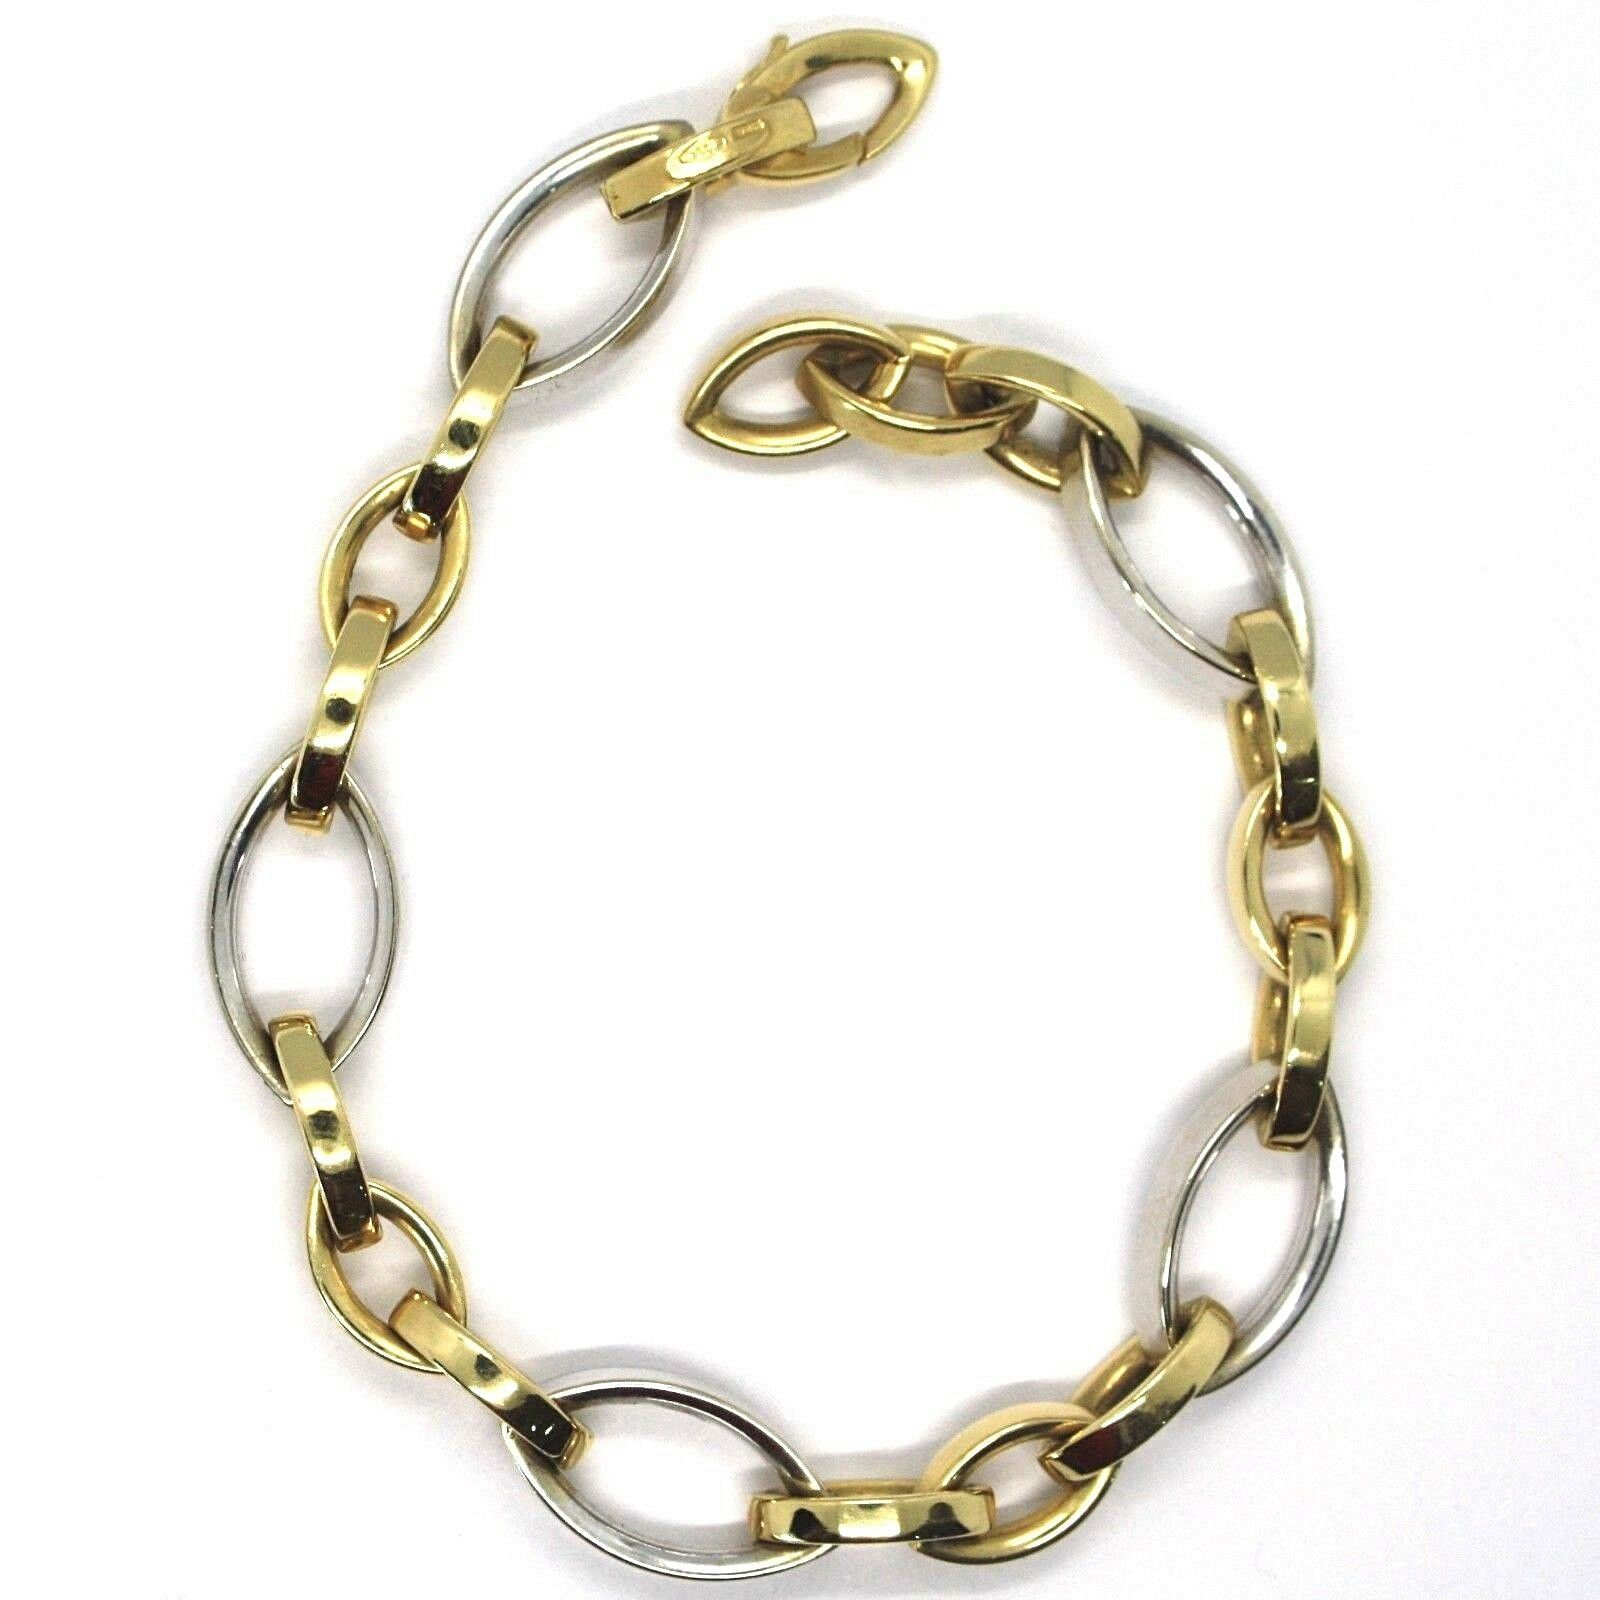 SOLID 18K YELLOW WHITE GOLD BRACELET, OVAL EYE ALTERNATE LINK, MADE IN ITALY